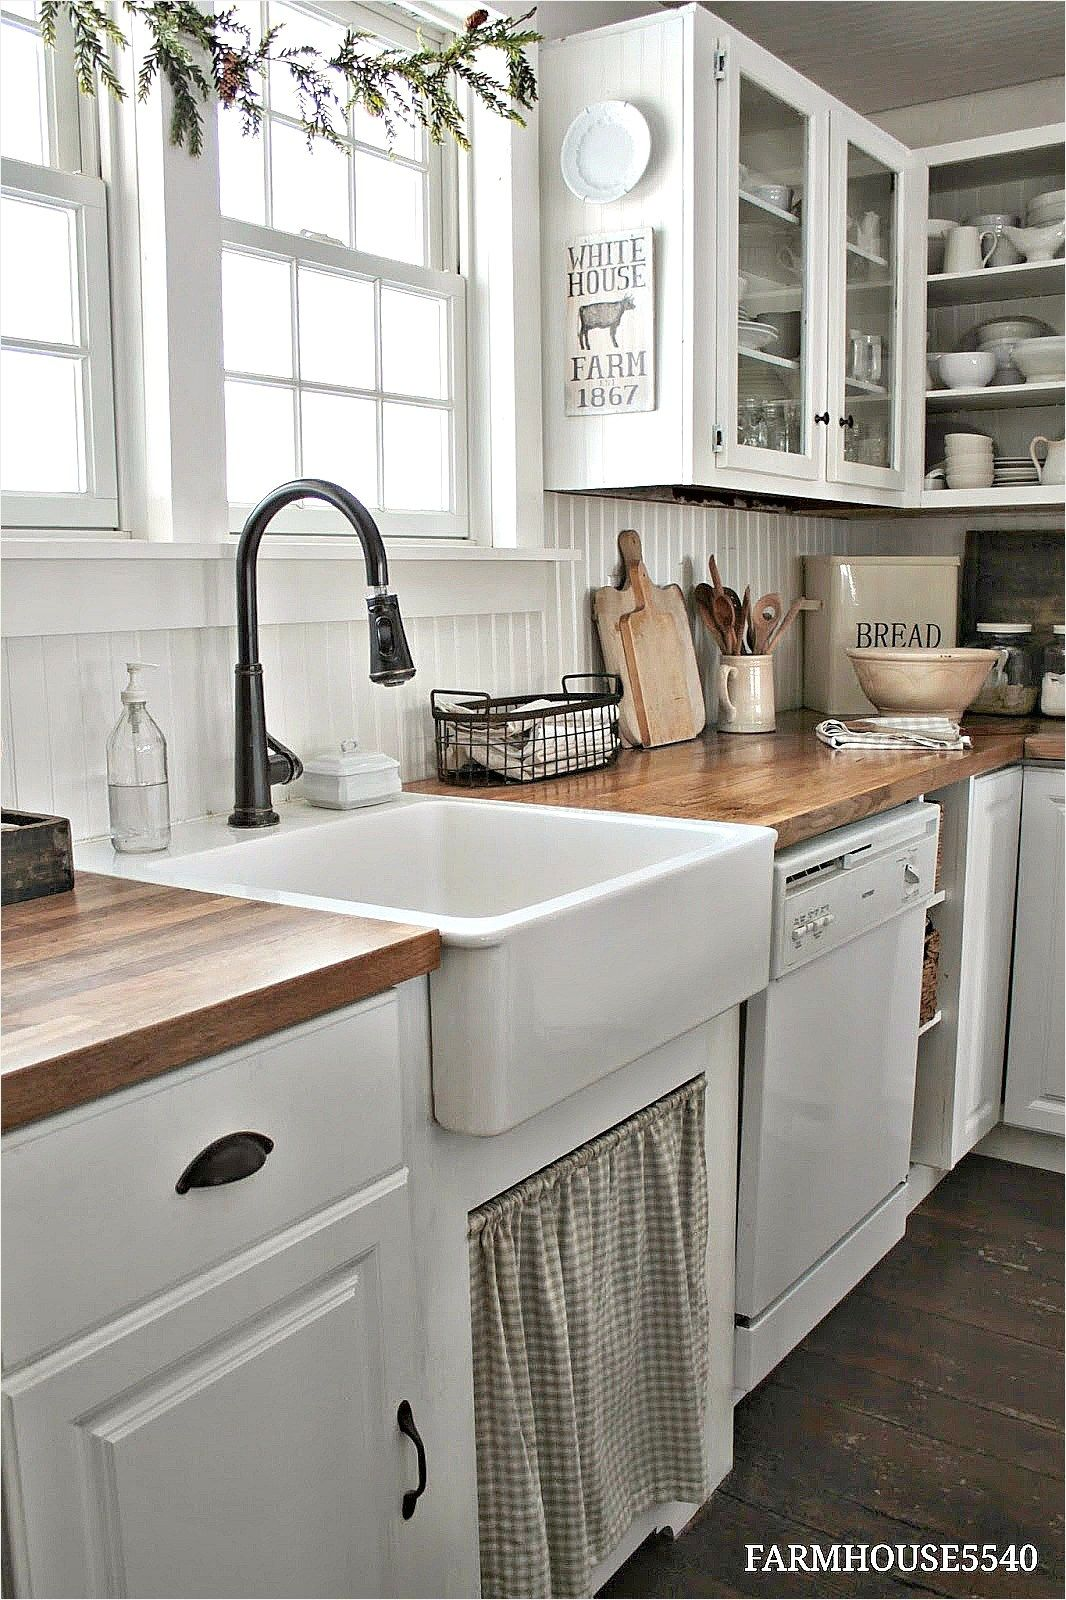 45 Perfect Farmhouse Small Kitchen Ideas 33 Decor The 36th Avenue 4